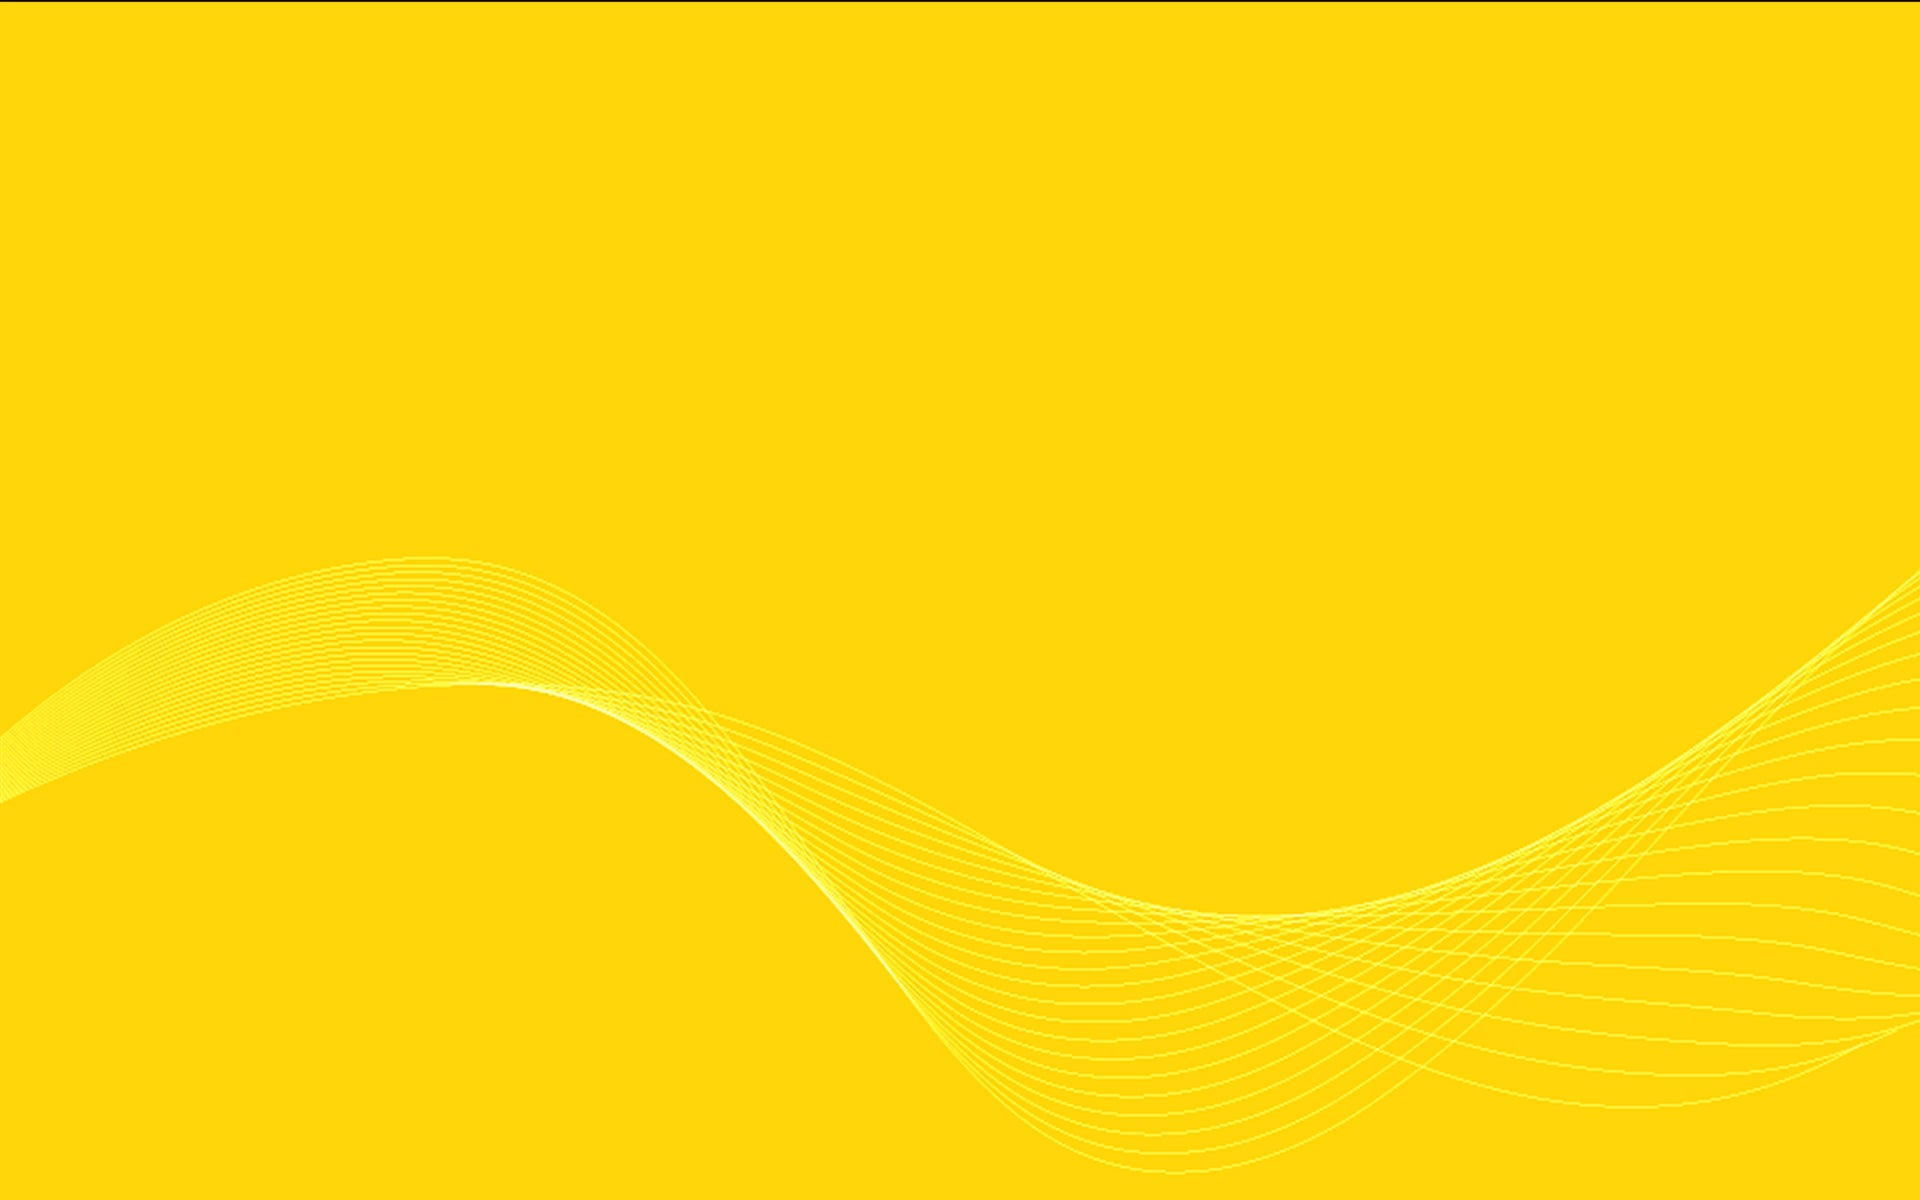 yellow website background images